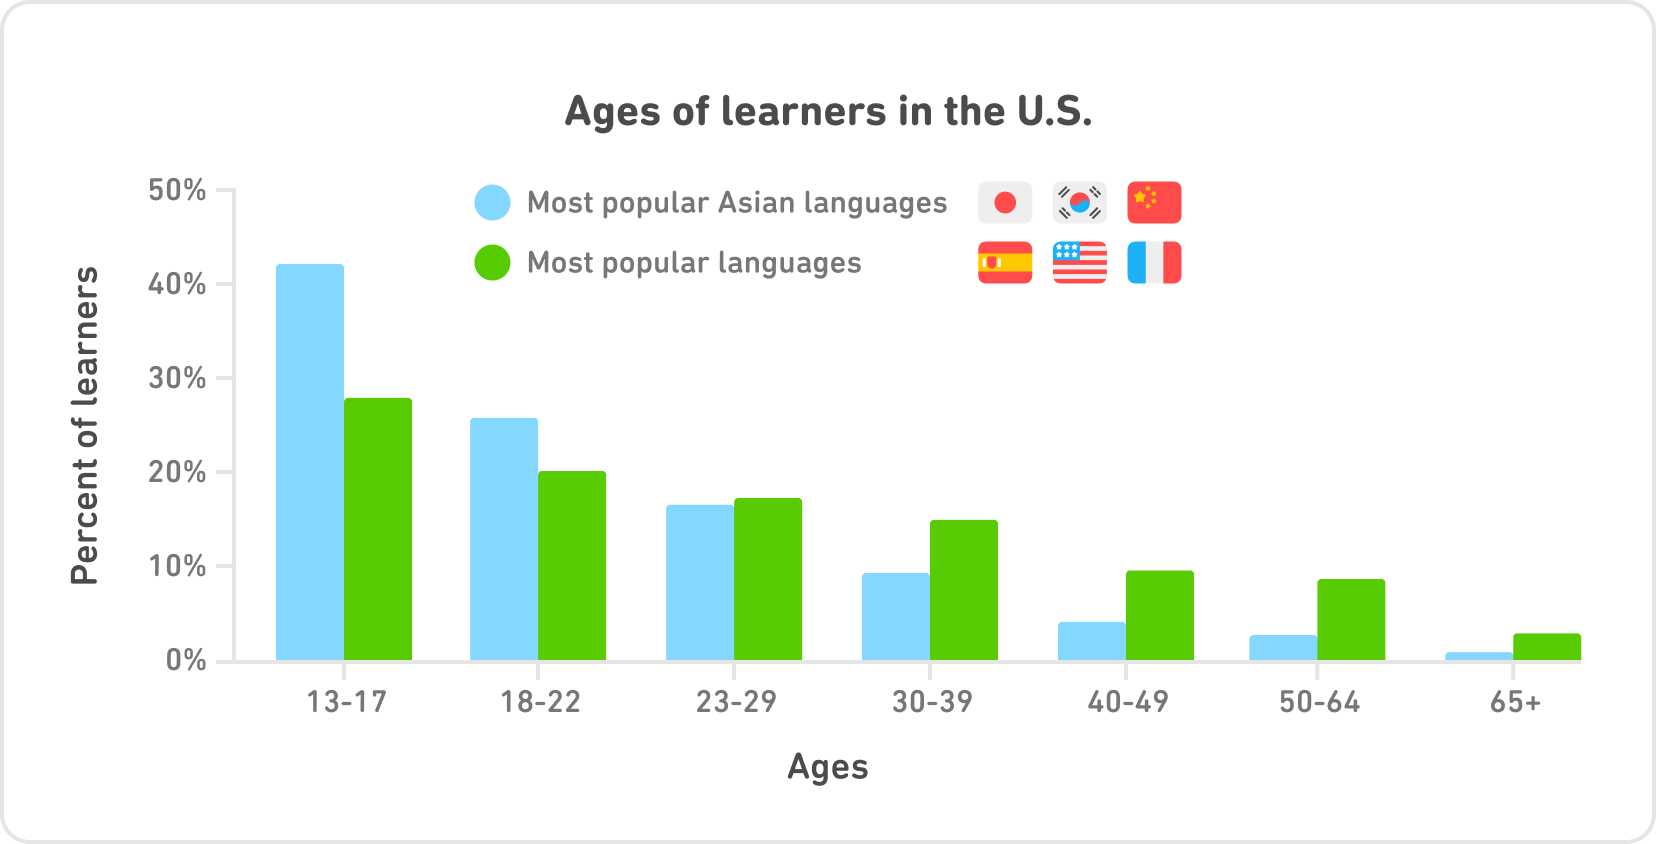 """Bar graph entitled """"Age of learners in the U.S."""" On the x-axis are seven age groups: 13-17, 18-22, 23-29, 30-39, 40-49, 50-64, and 65+. On the y-axis are the percents of learners, and the tick marks go from 0% at the bottom to 50% at the top. For each age group, there is a blue bar and a green bar. The blue bars represent """"Most popular Asian languages,"""" Japanese, Korean, and Chinese. The green bars represent """"Most popular languages,"""" Spanish, English, and French. The blue Asian languages bar is the tallest for 13-17 -- taller than any other bar for any age! -- reaching over 40%. It's much taller than the green bar for most popular languages. Both bars get shorter with each age group. For 18-22, the blue is still taller than the green, then they are about even, and after age 30 all the green bars are taller than the blue bars."""